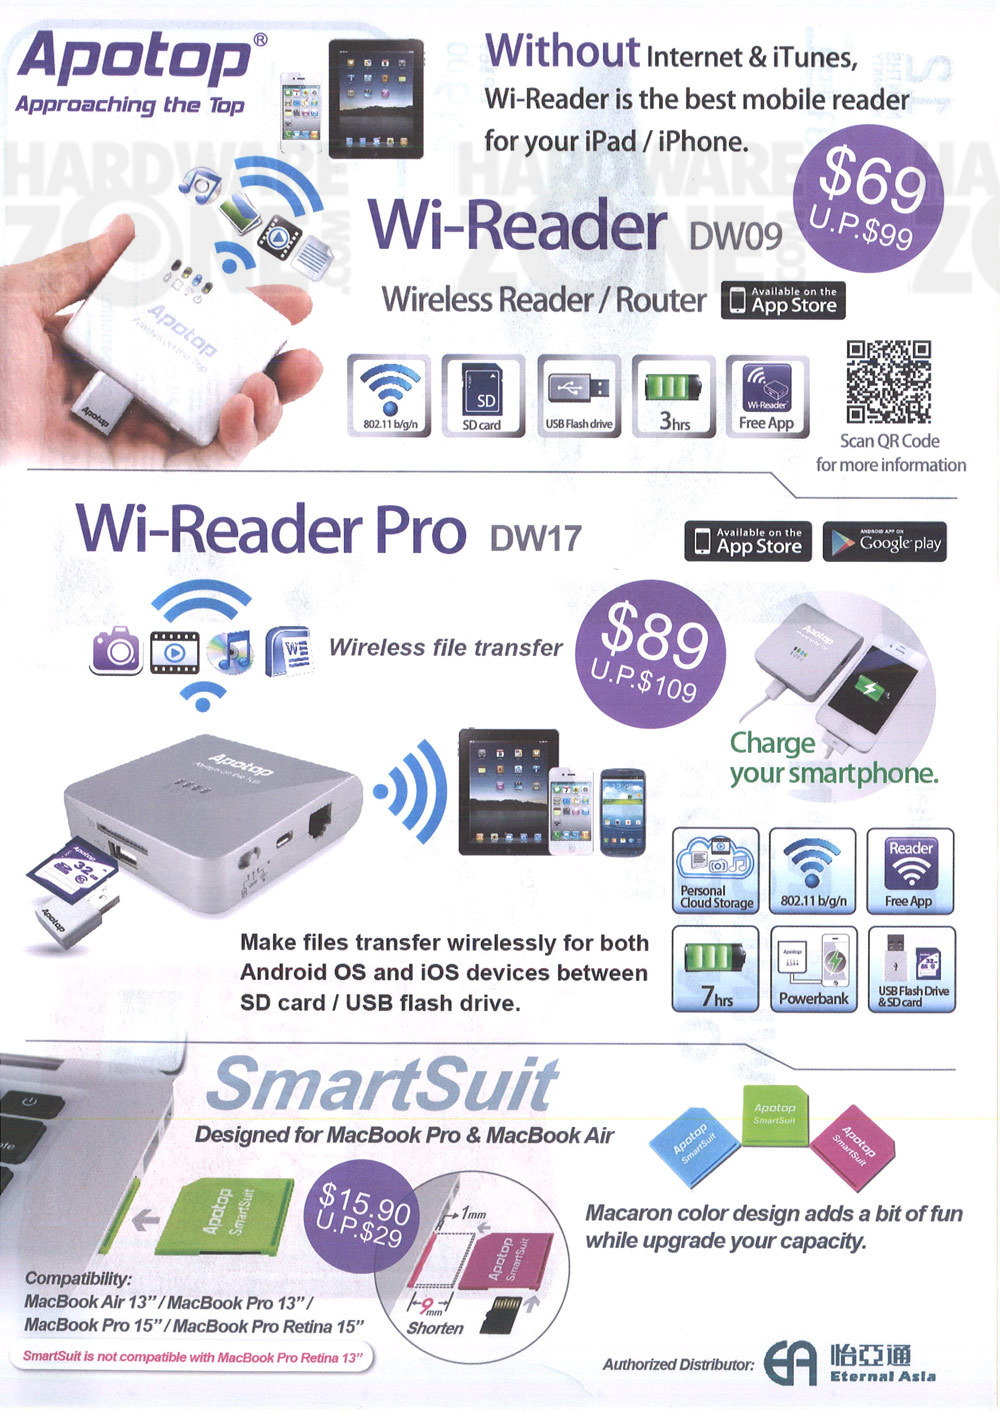 Apotop wireless storage readers